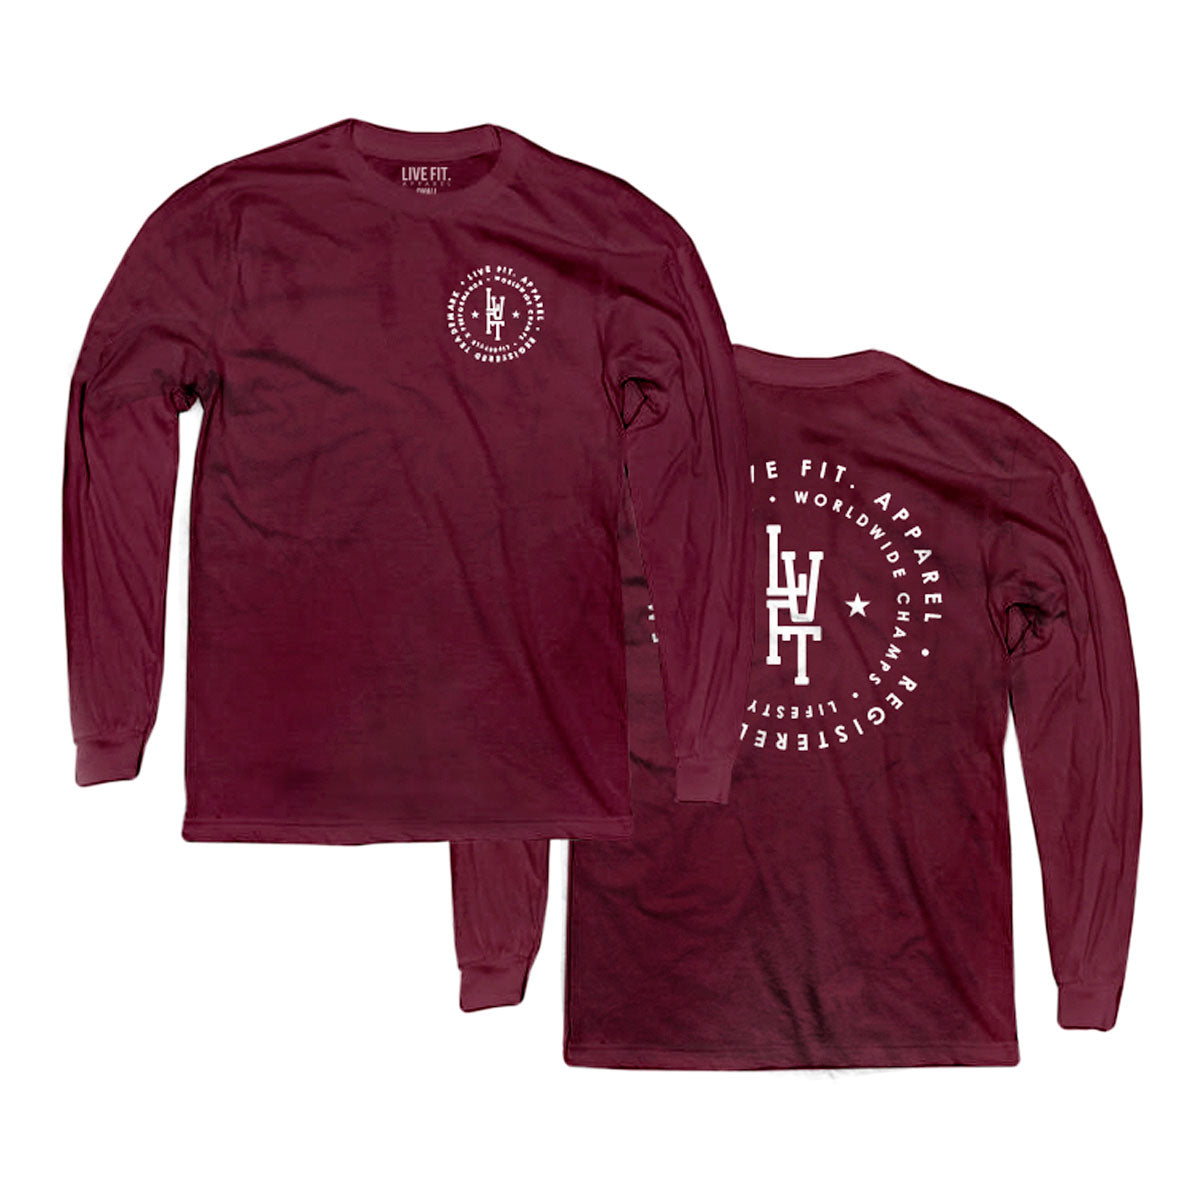 Champs Long Sleeve - Burgundy/White